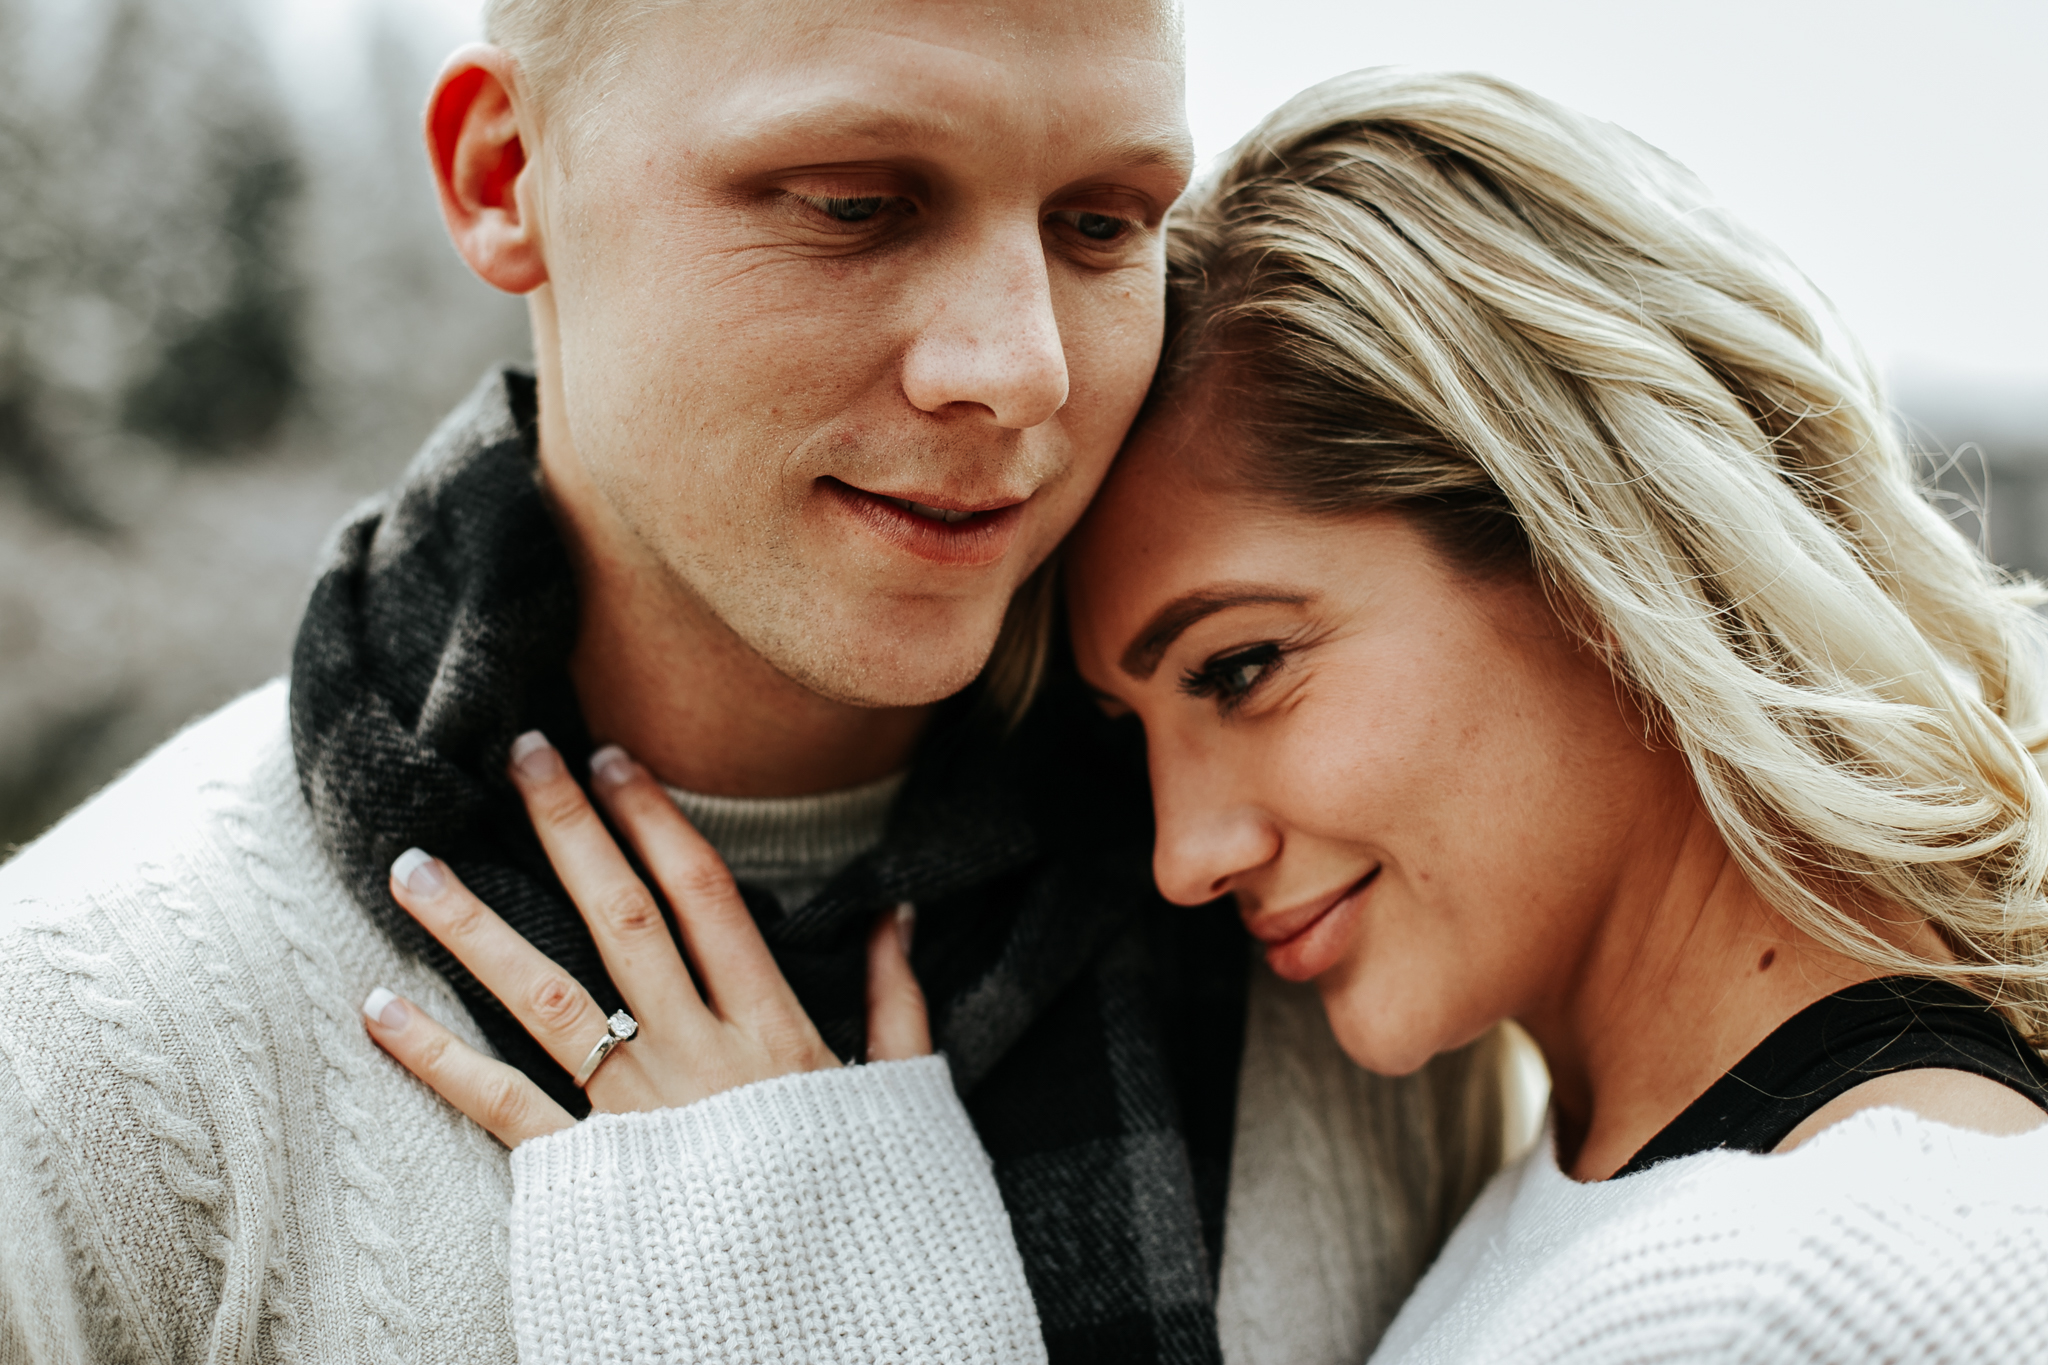 love-and-be-loved-photography-mountain-engagement-ashlyn-rob-perfect-fit-4-u-photo-image-picture-22.jpg